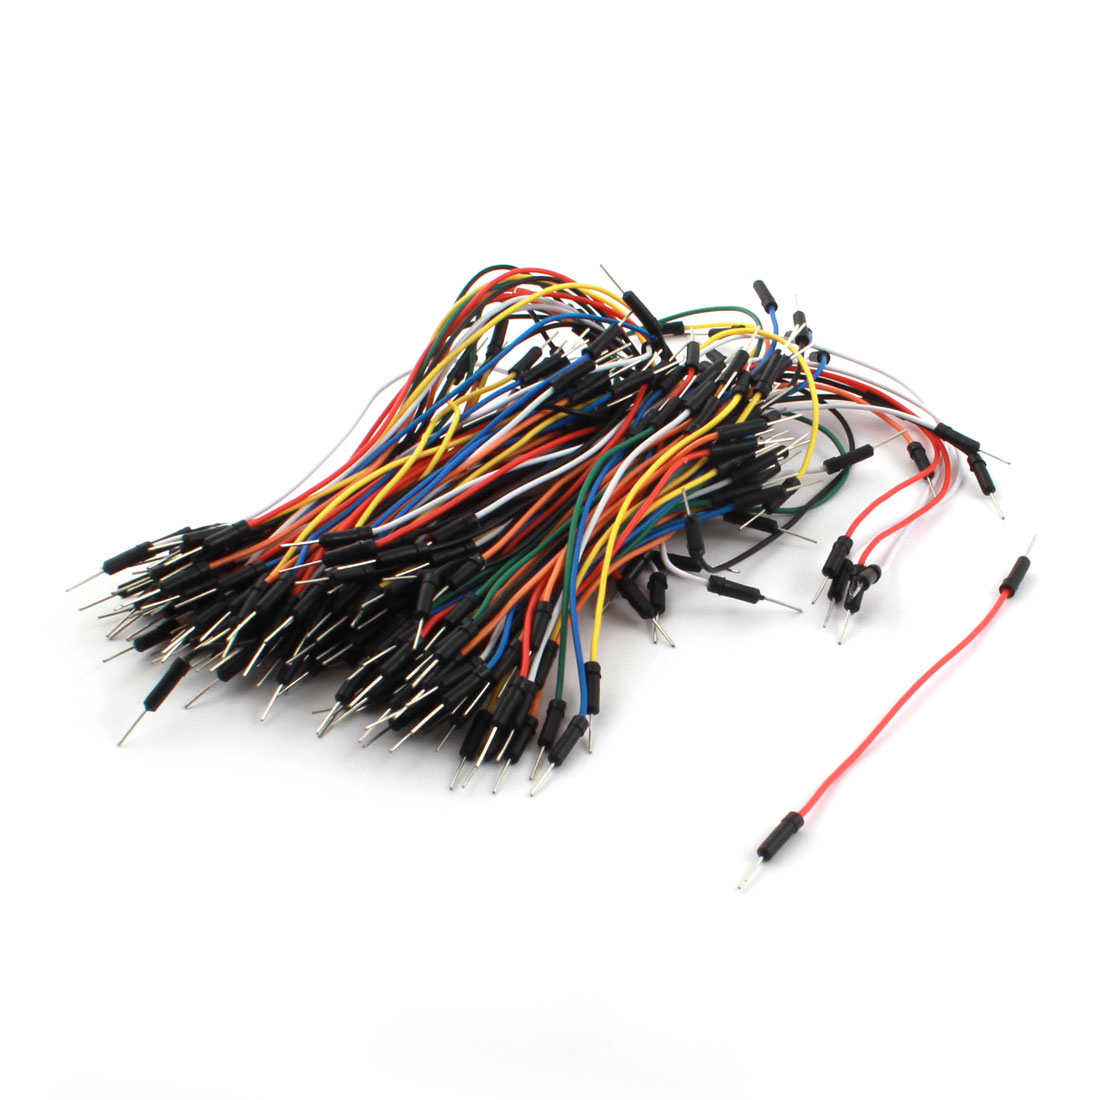 150Pcs 1P-1P M/M Breadboard Testing Jumper Wire Cable 2.54mm 10cm 25cm